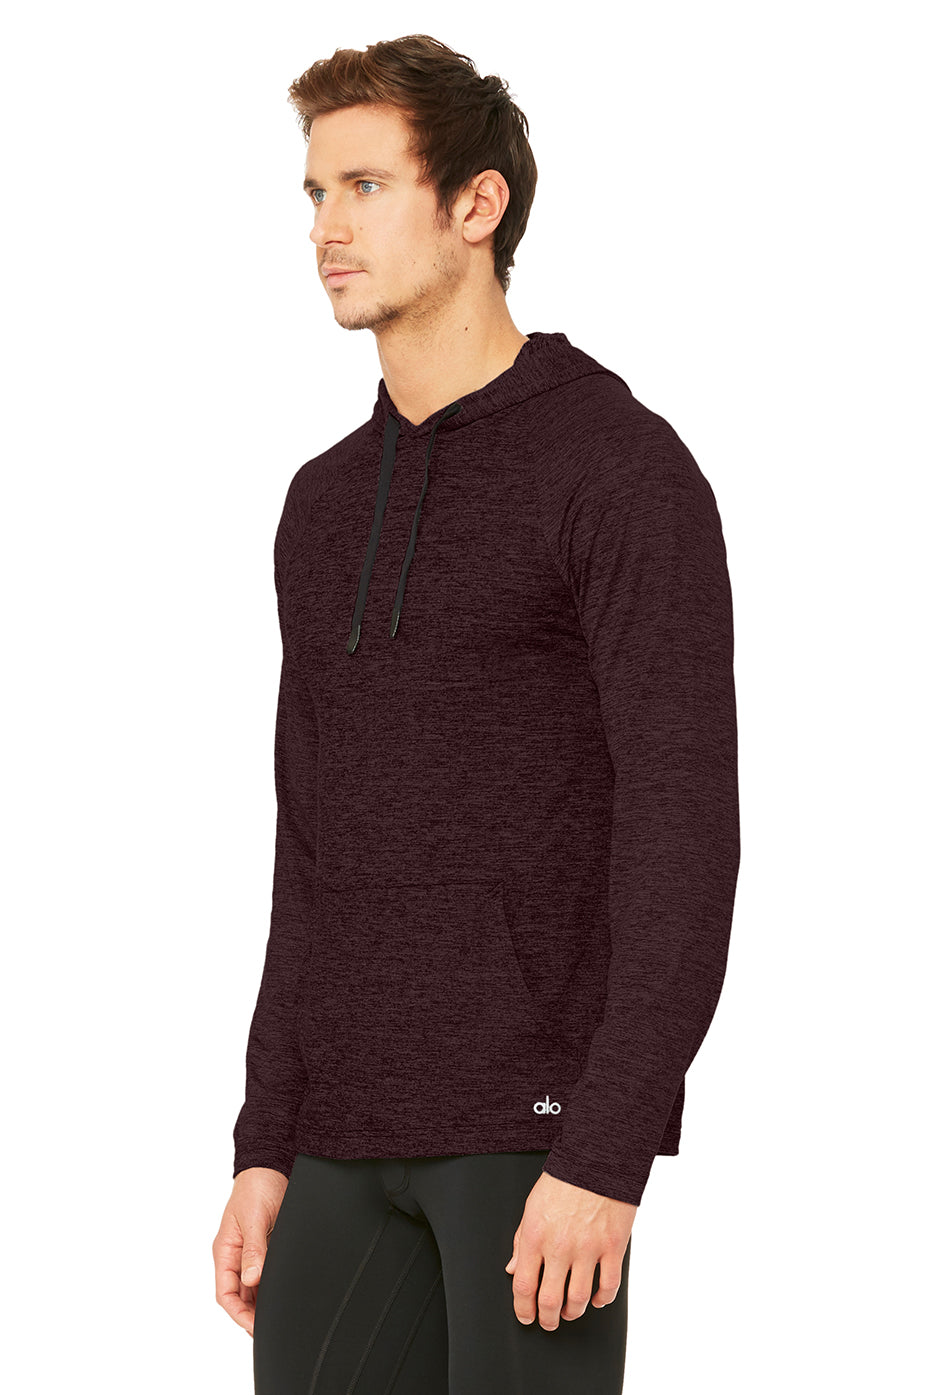 The Conquer Hoodie